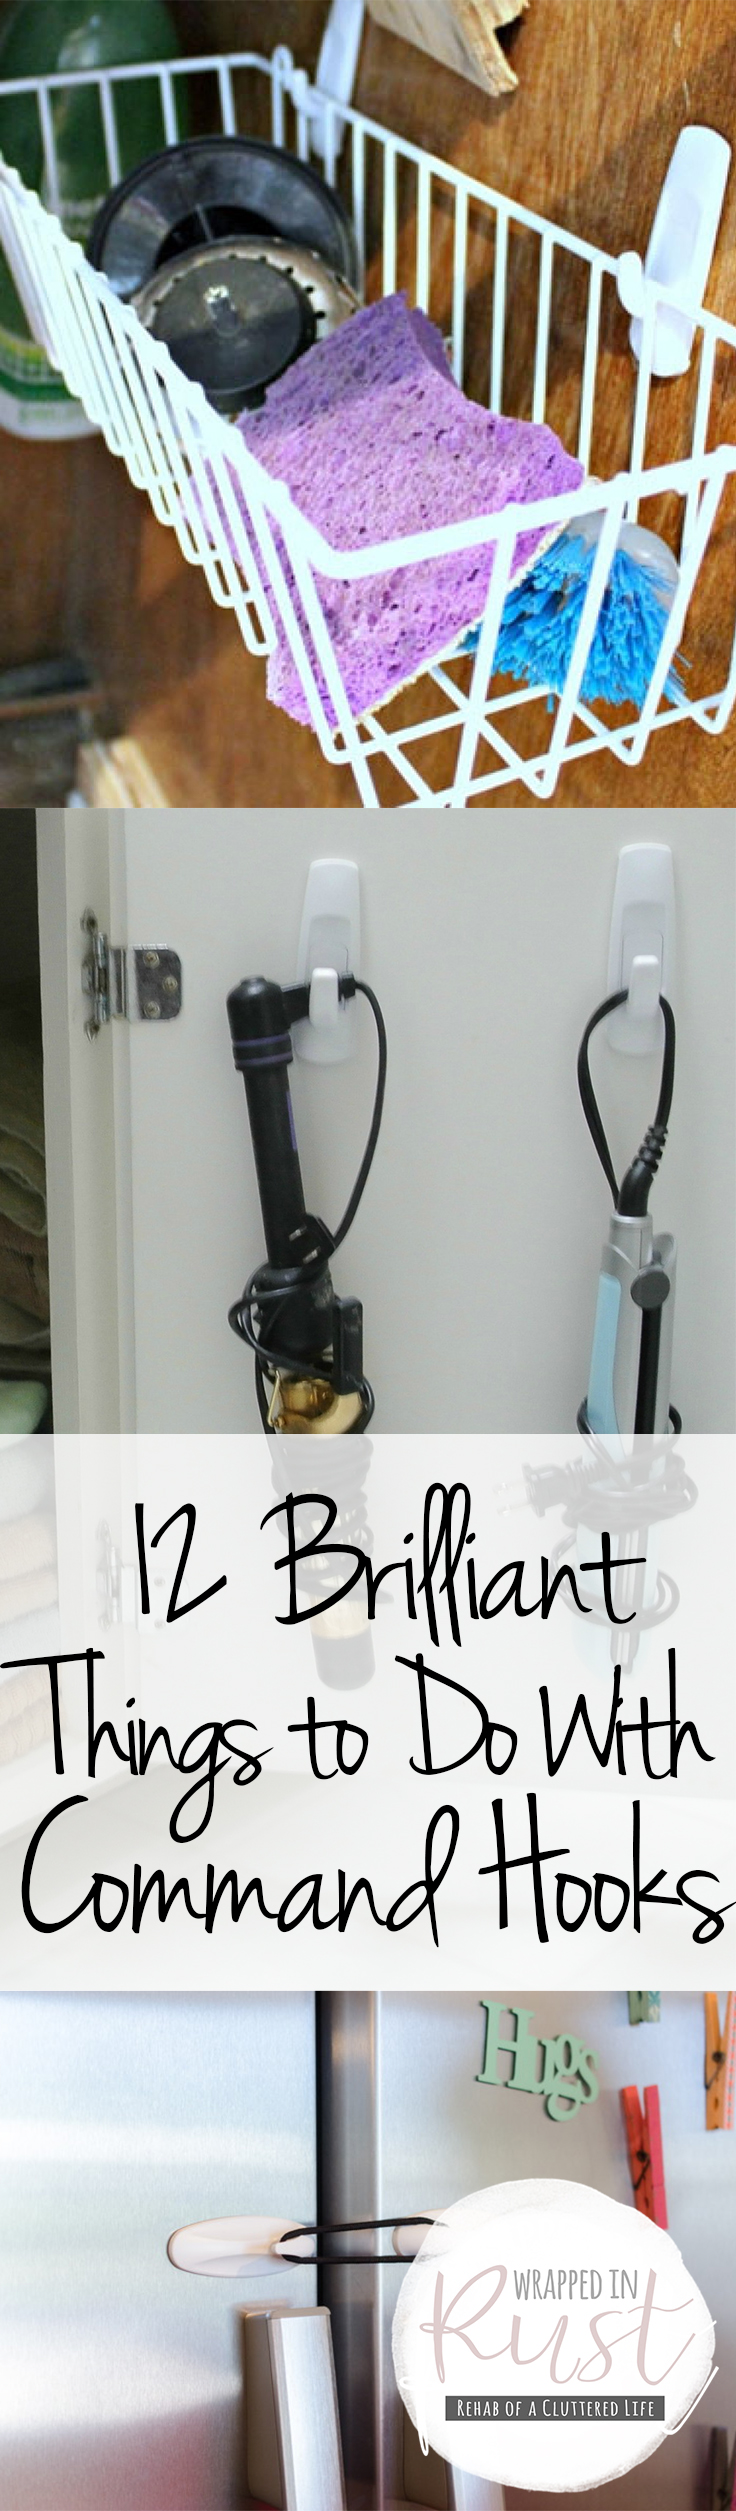 Command Hooks, Things to Do With Command Hooks, Command Hook Hacks, Organizing WIth Command Hooks, How to Organize With Command Hooks, Organization Hacks, Clutter Free Home, Popular Pin